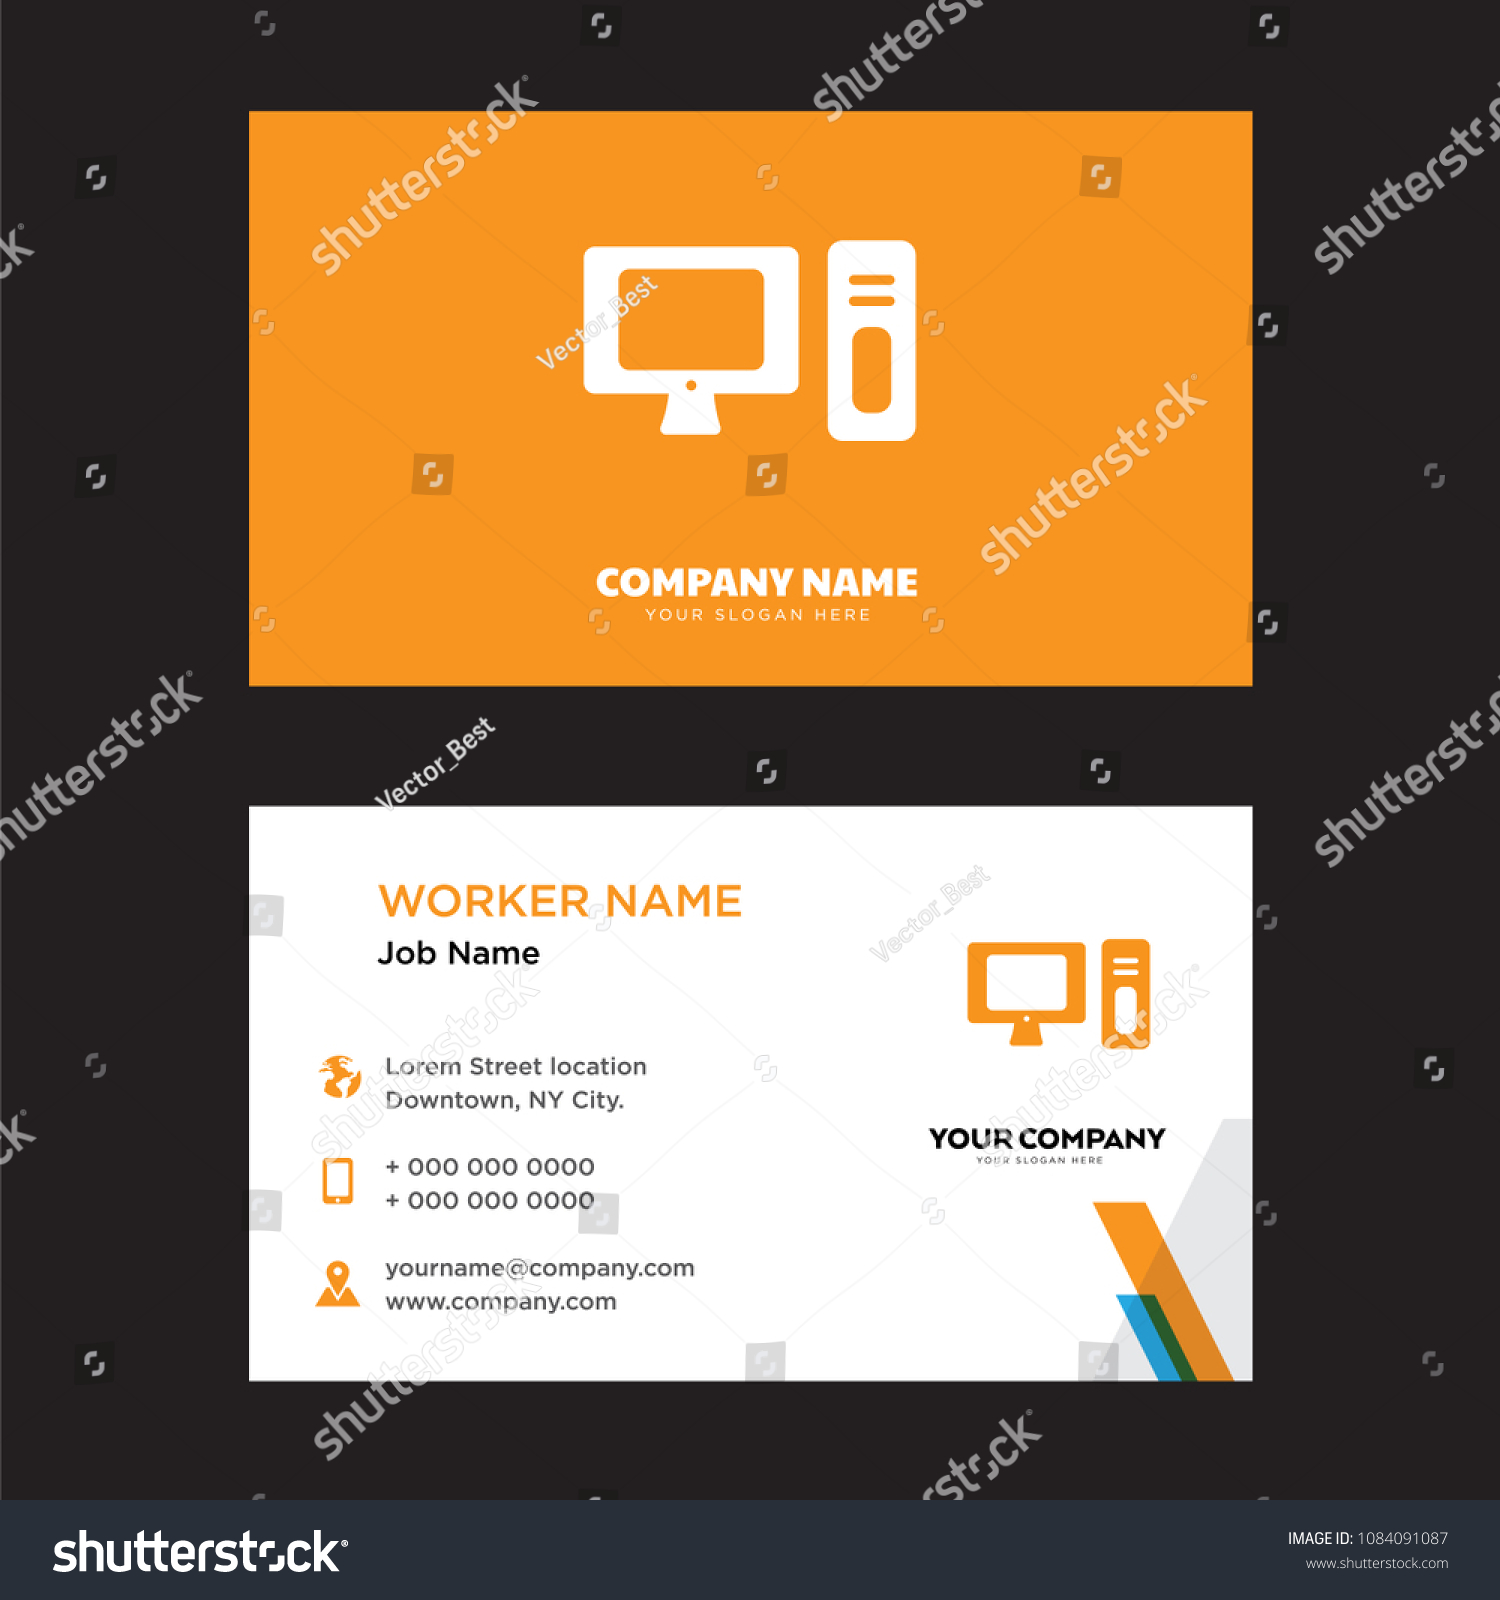 Computer Business Card Design Template Visiting Stock Photo (Photo ...